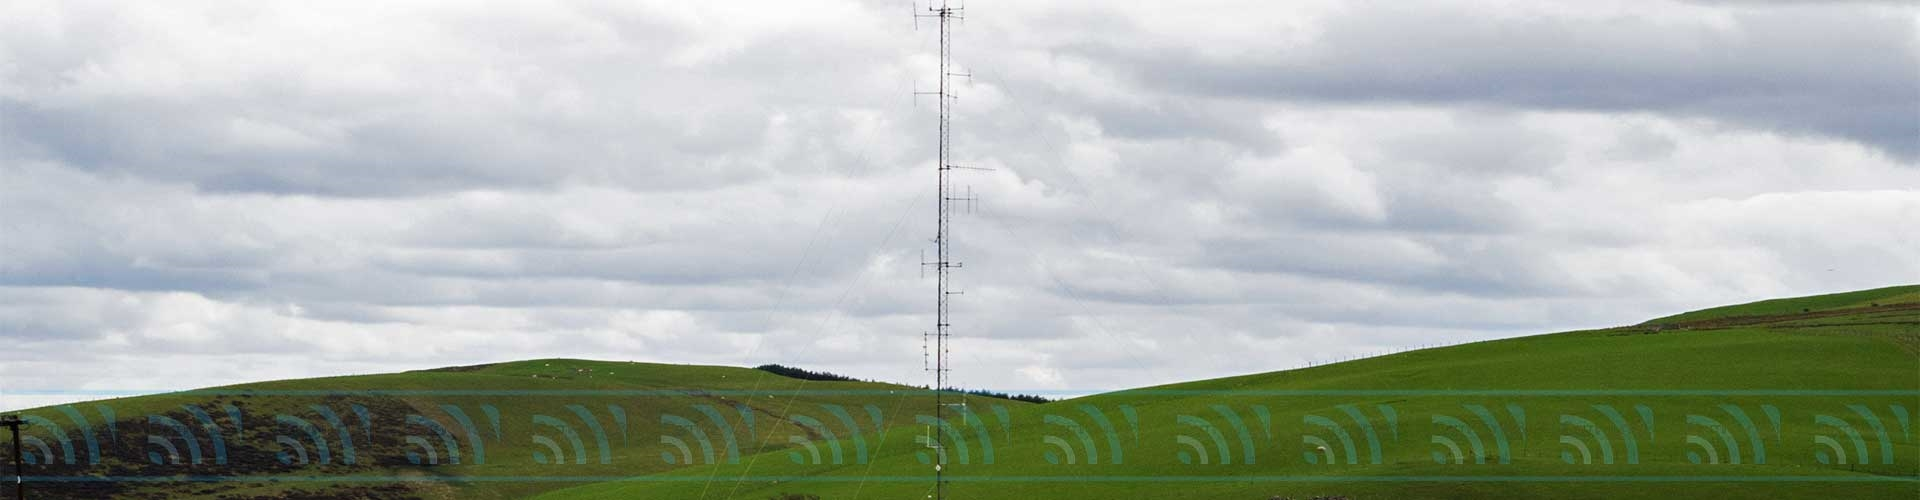 radio antenna masts for hire across Wales including towable mobile towers